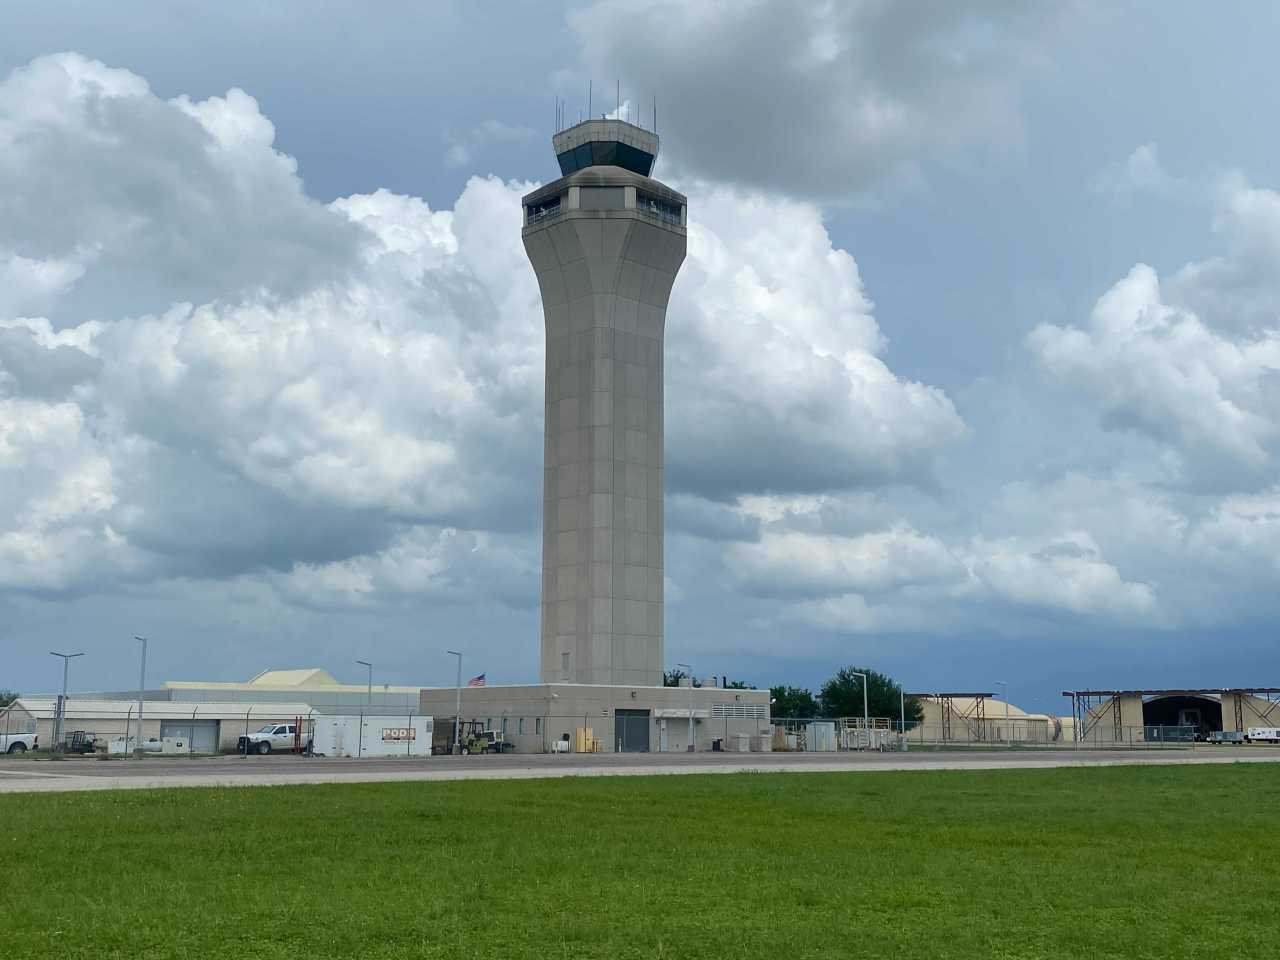 Austin airport tower closed temporarily, both arrivals and departures delayed